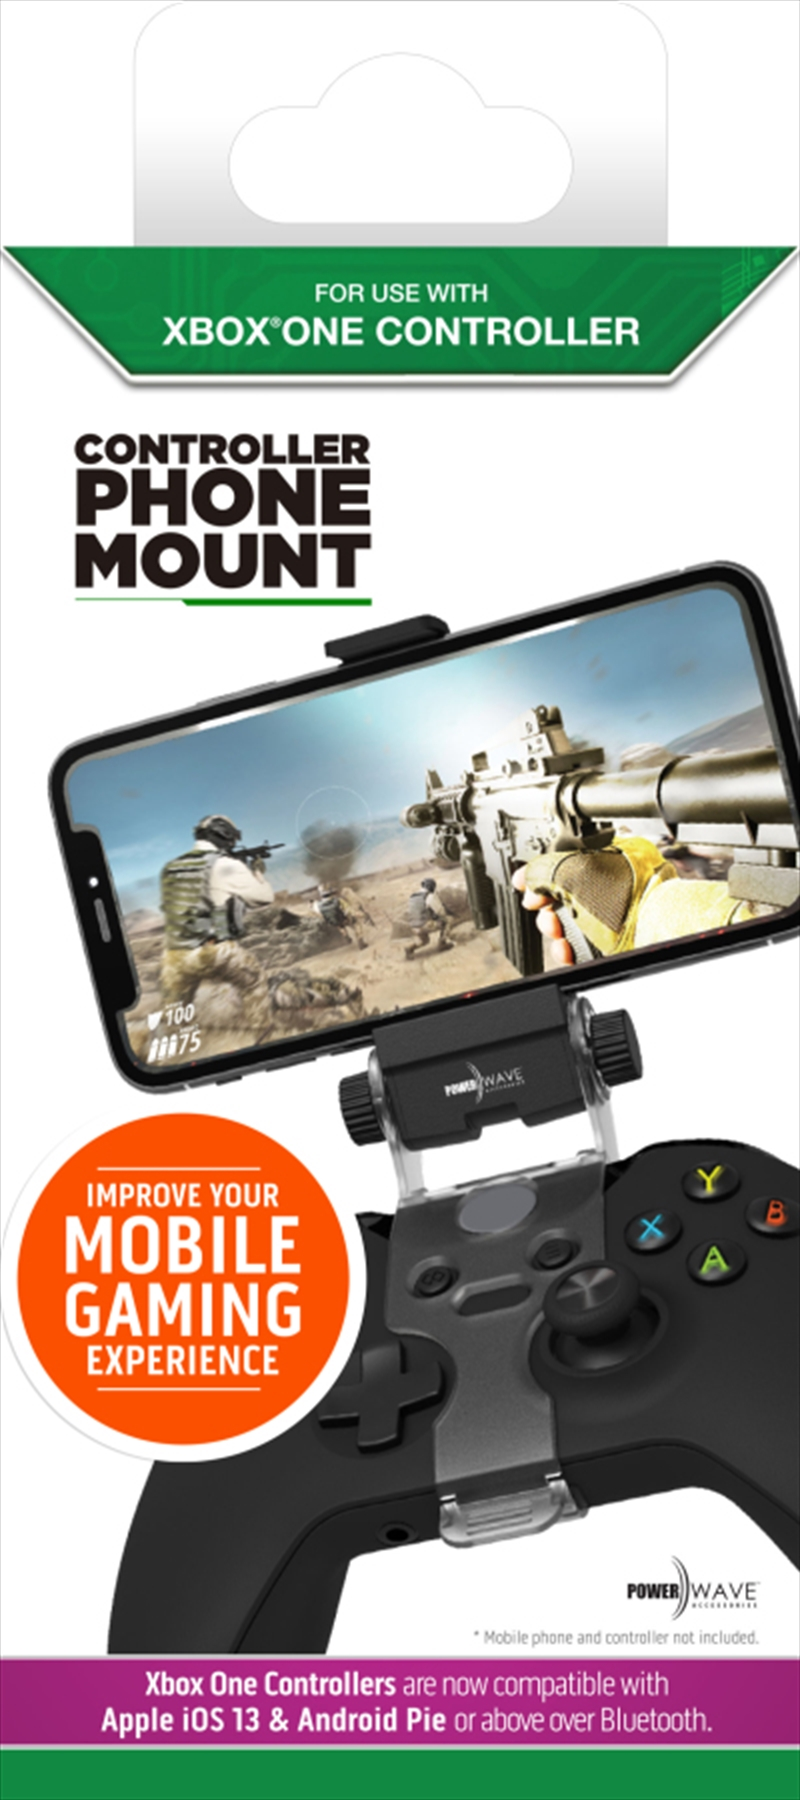 Powerwave Xbox One Controller Phone Mount | XBox One